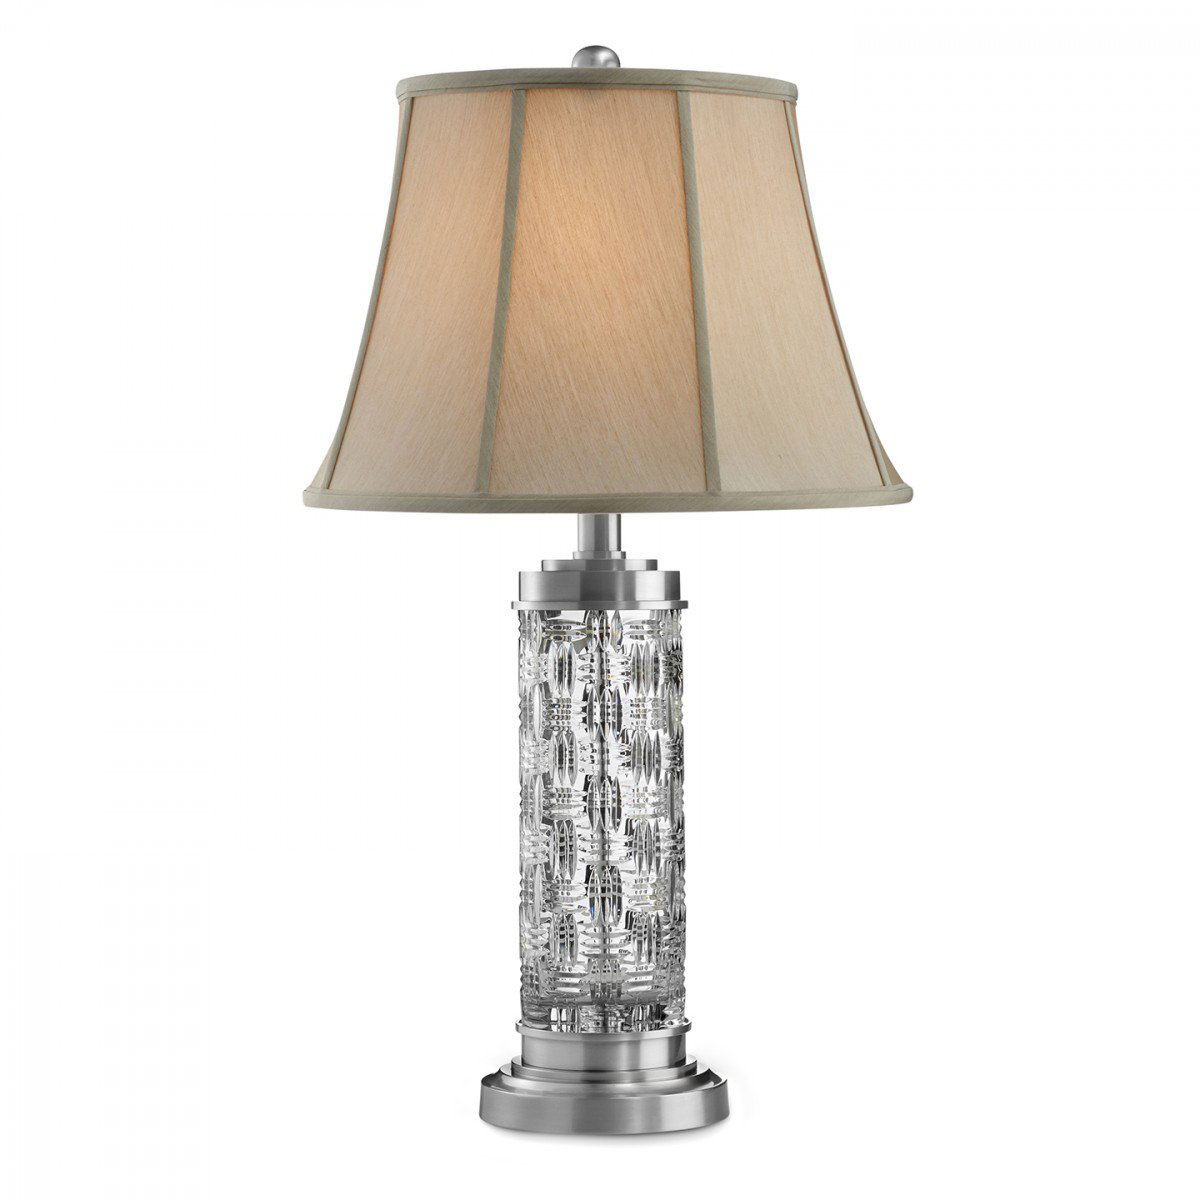 "Waterford Crystal, Grafix 30 1/2"" Table Lamp"